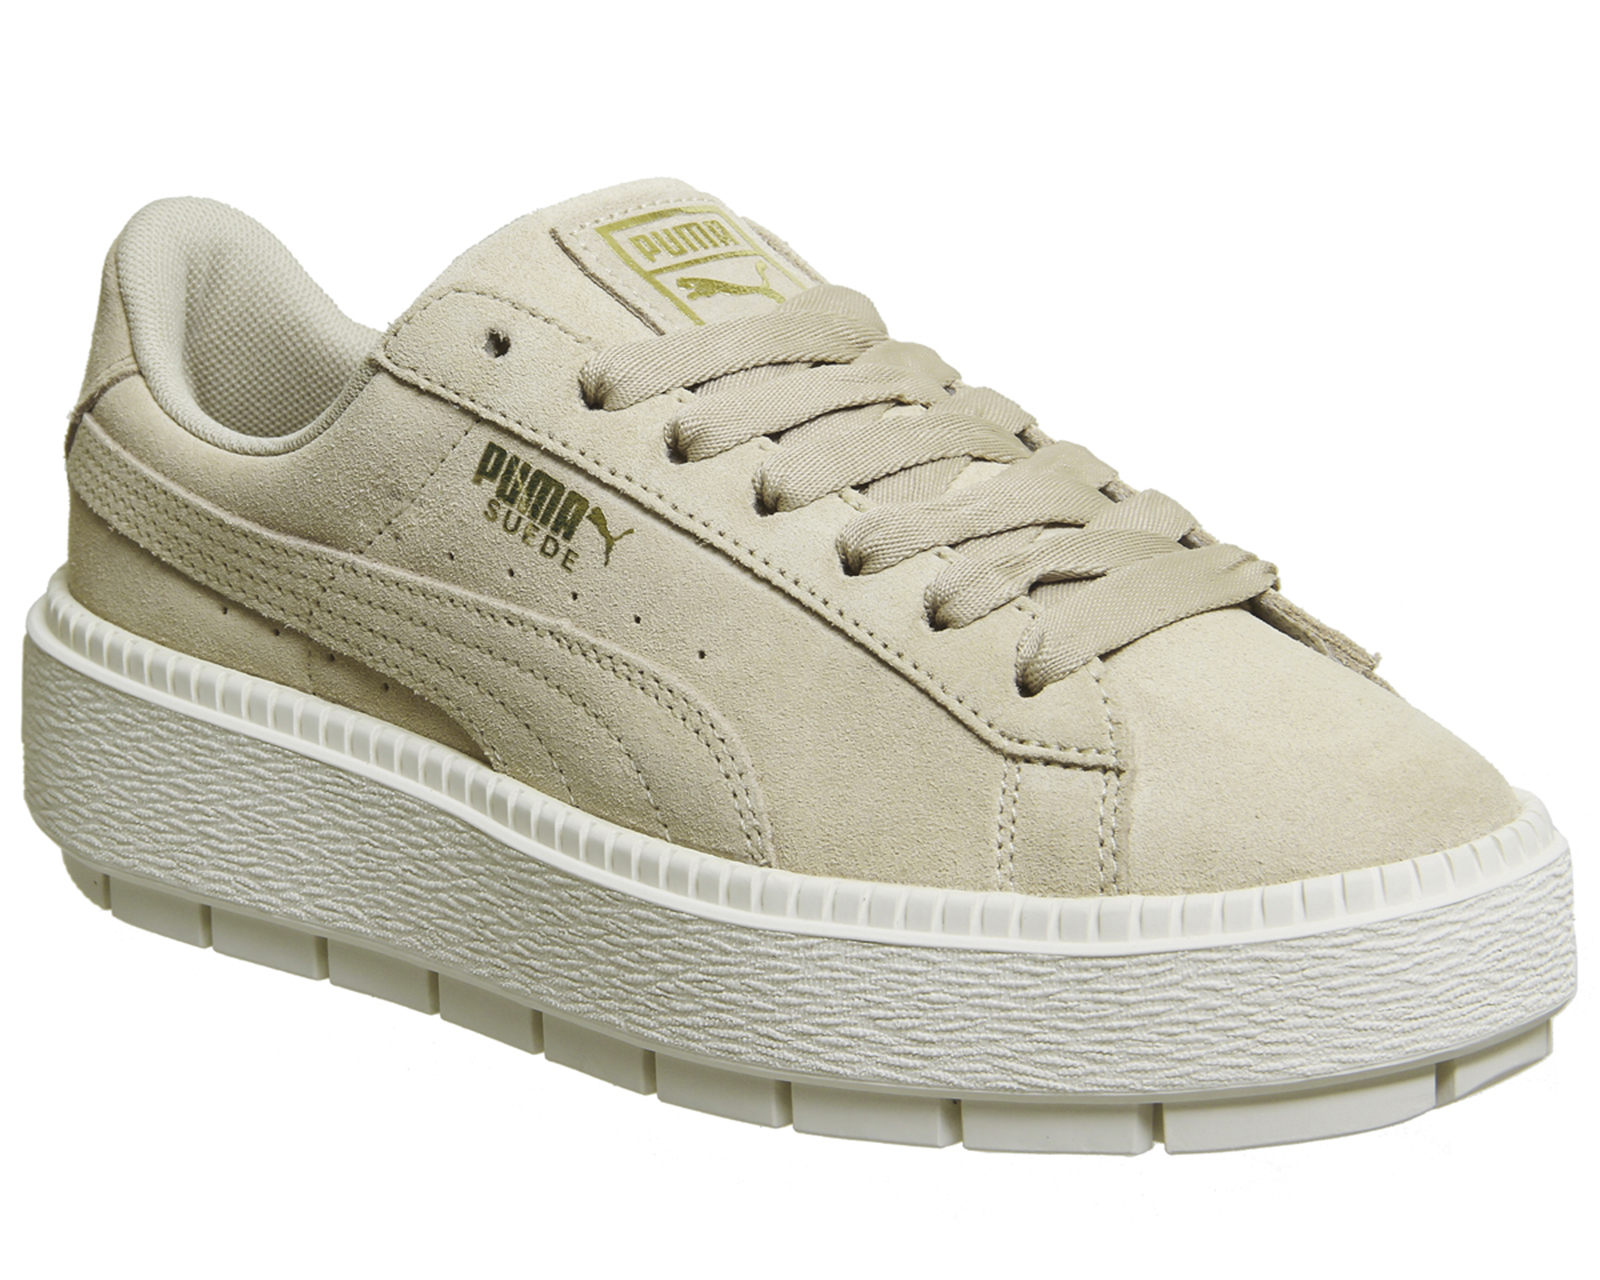 992ba9a1d Sentinel Womens Puma Suede Platform Trace Trainers SAFARI MARSHMALLOW  Trainers Shoes